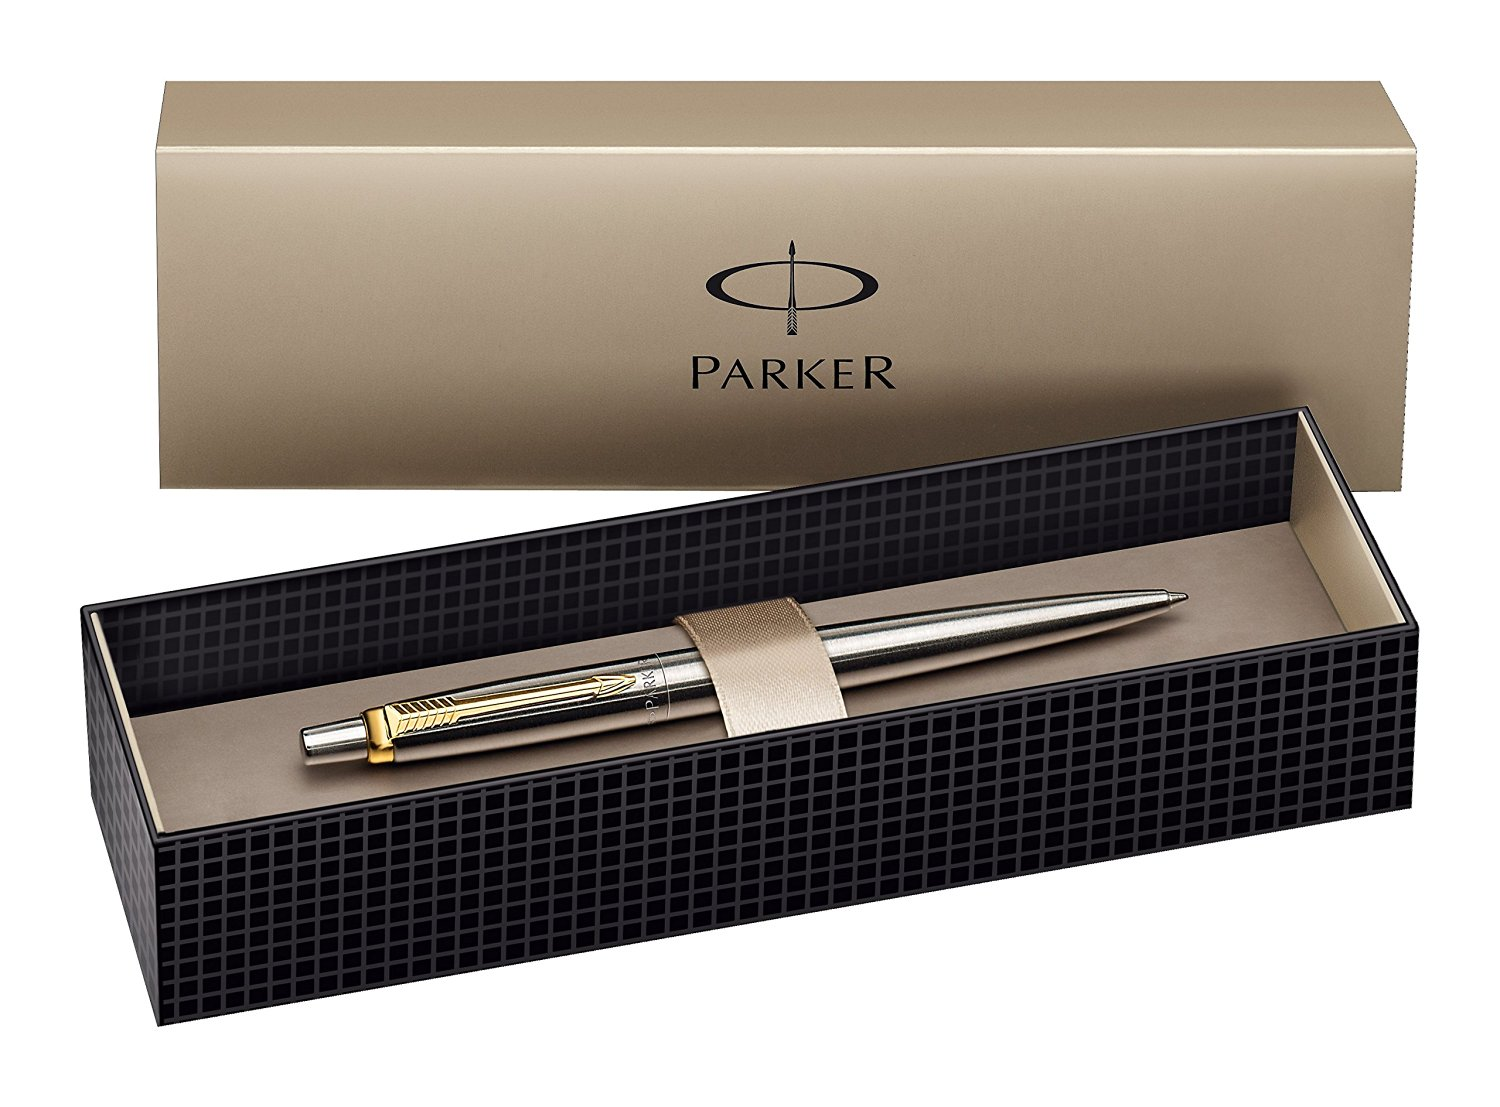 Bút bi Parker Jotter Ballpoint Pen, Stainless Steel with Gold-Plated Trim - Ngòi M - Mực xanh - S0705510